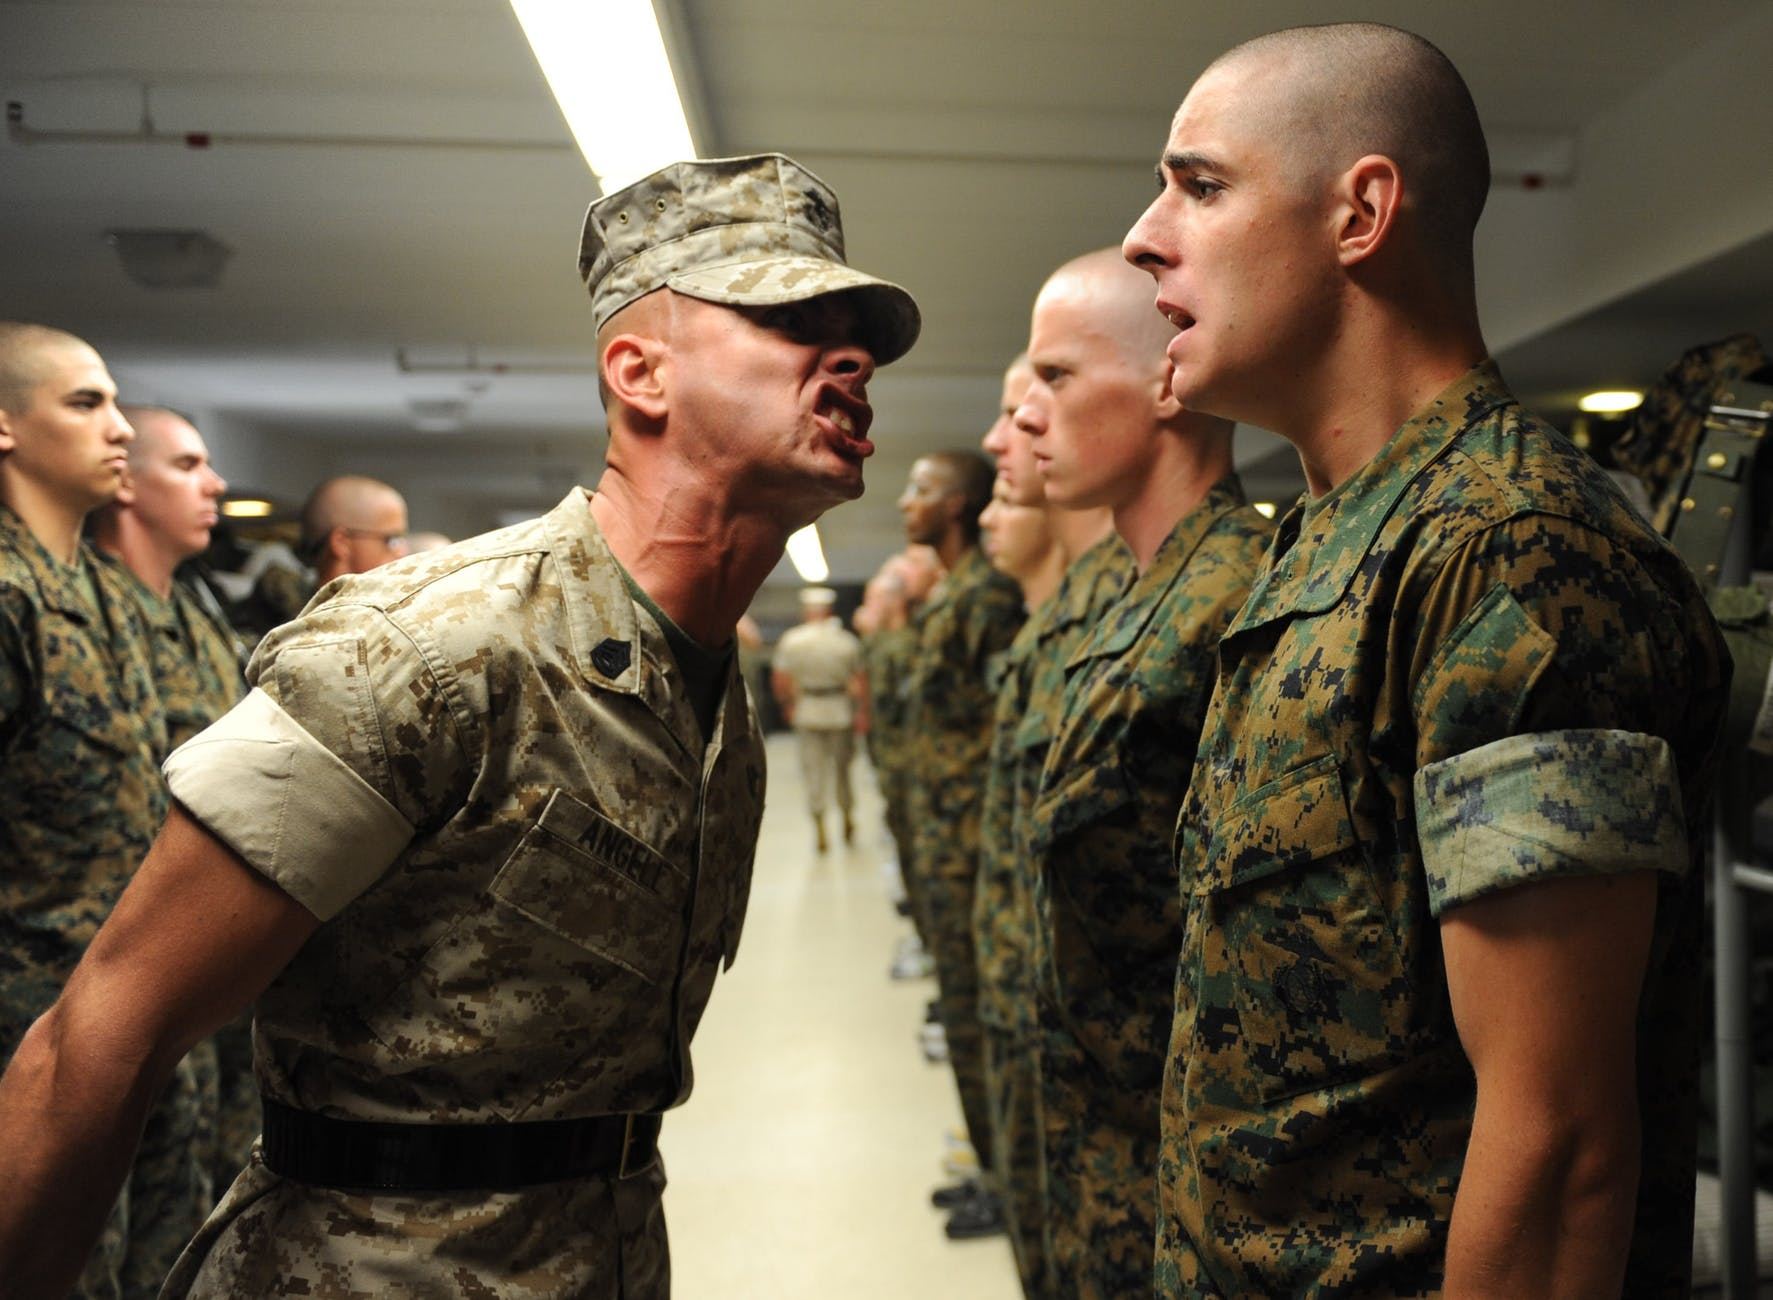 army authority drill instructor group